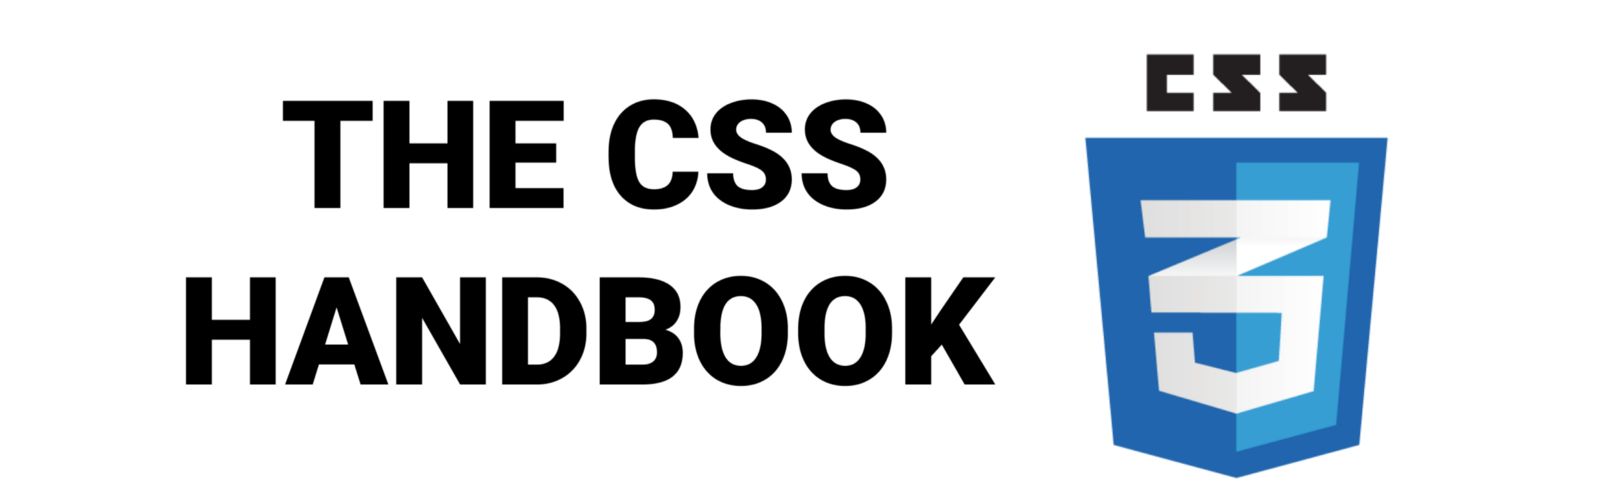 The CSS Handbook: a handy guide to CSS for developers